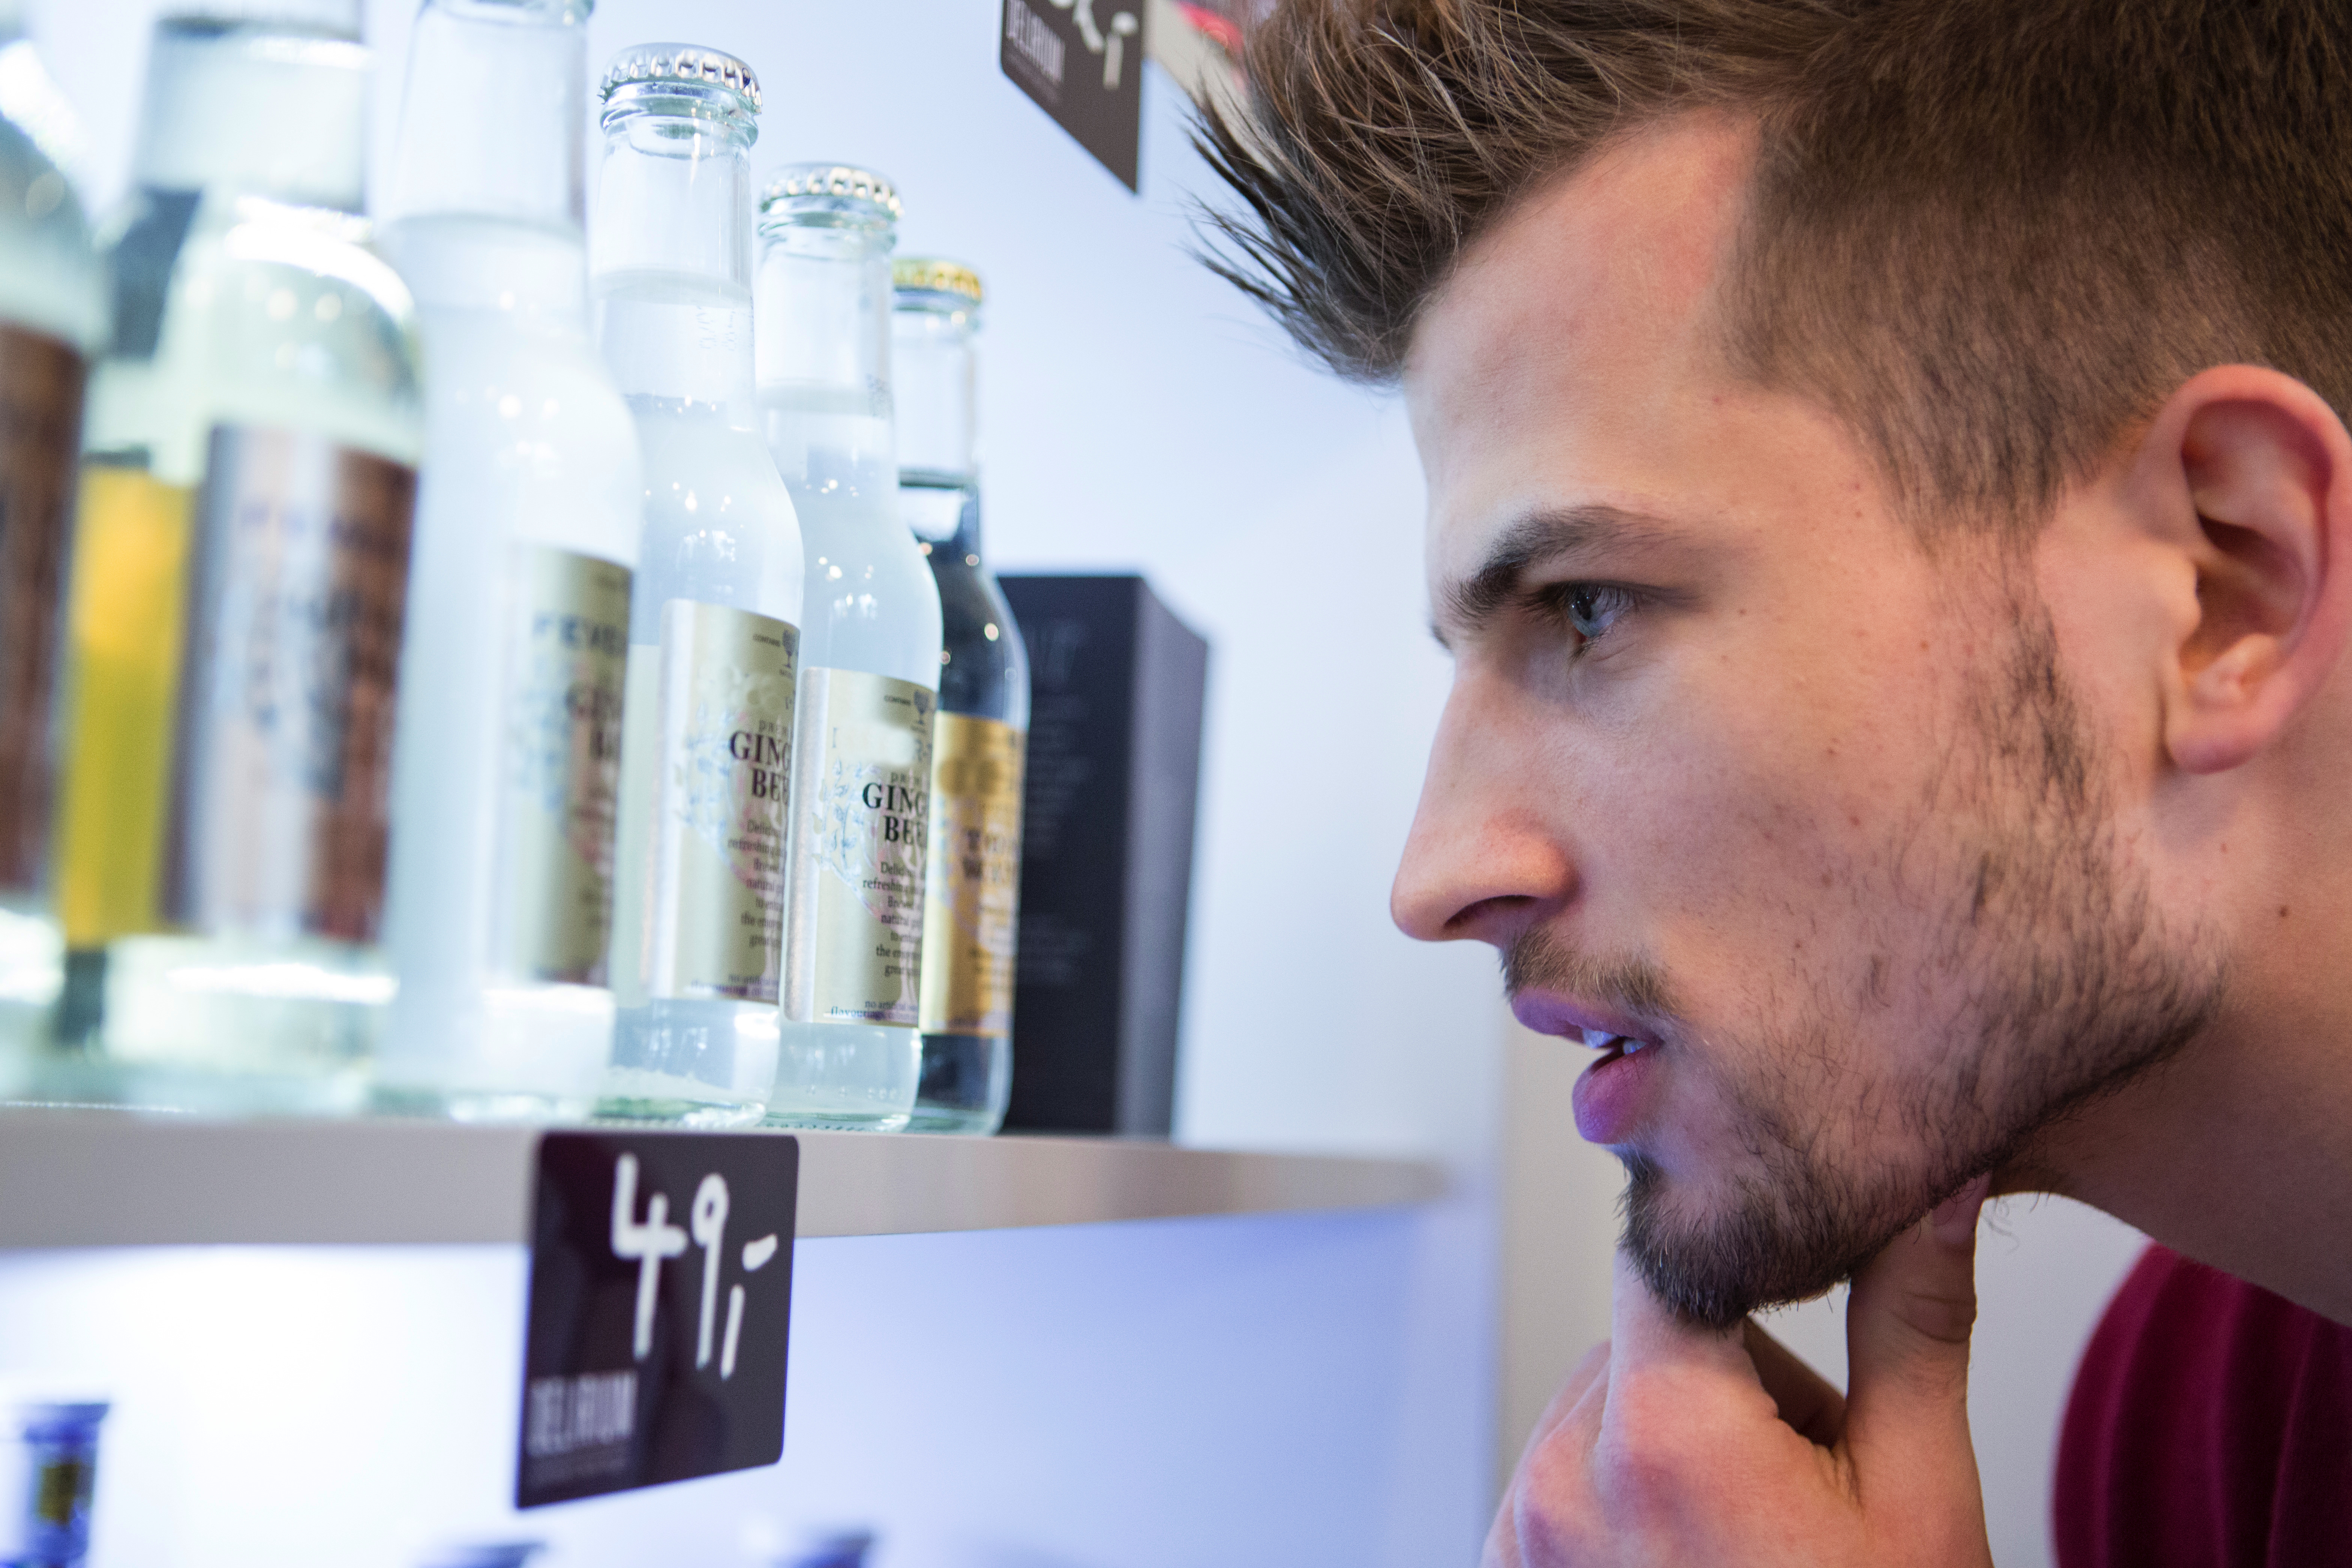 Close-up of man looking at beer bottles displayed on shelf